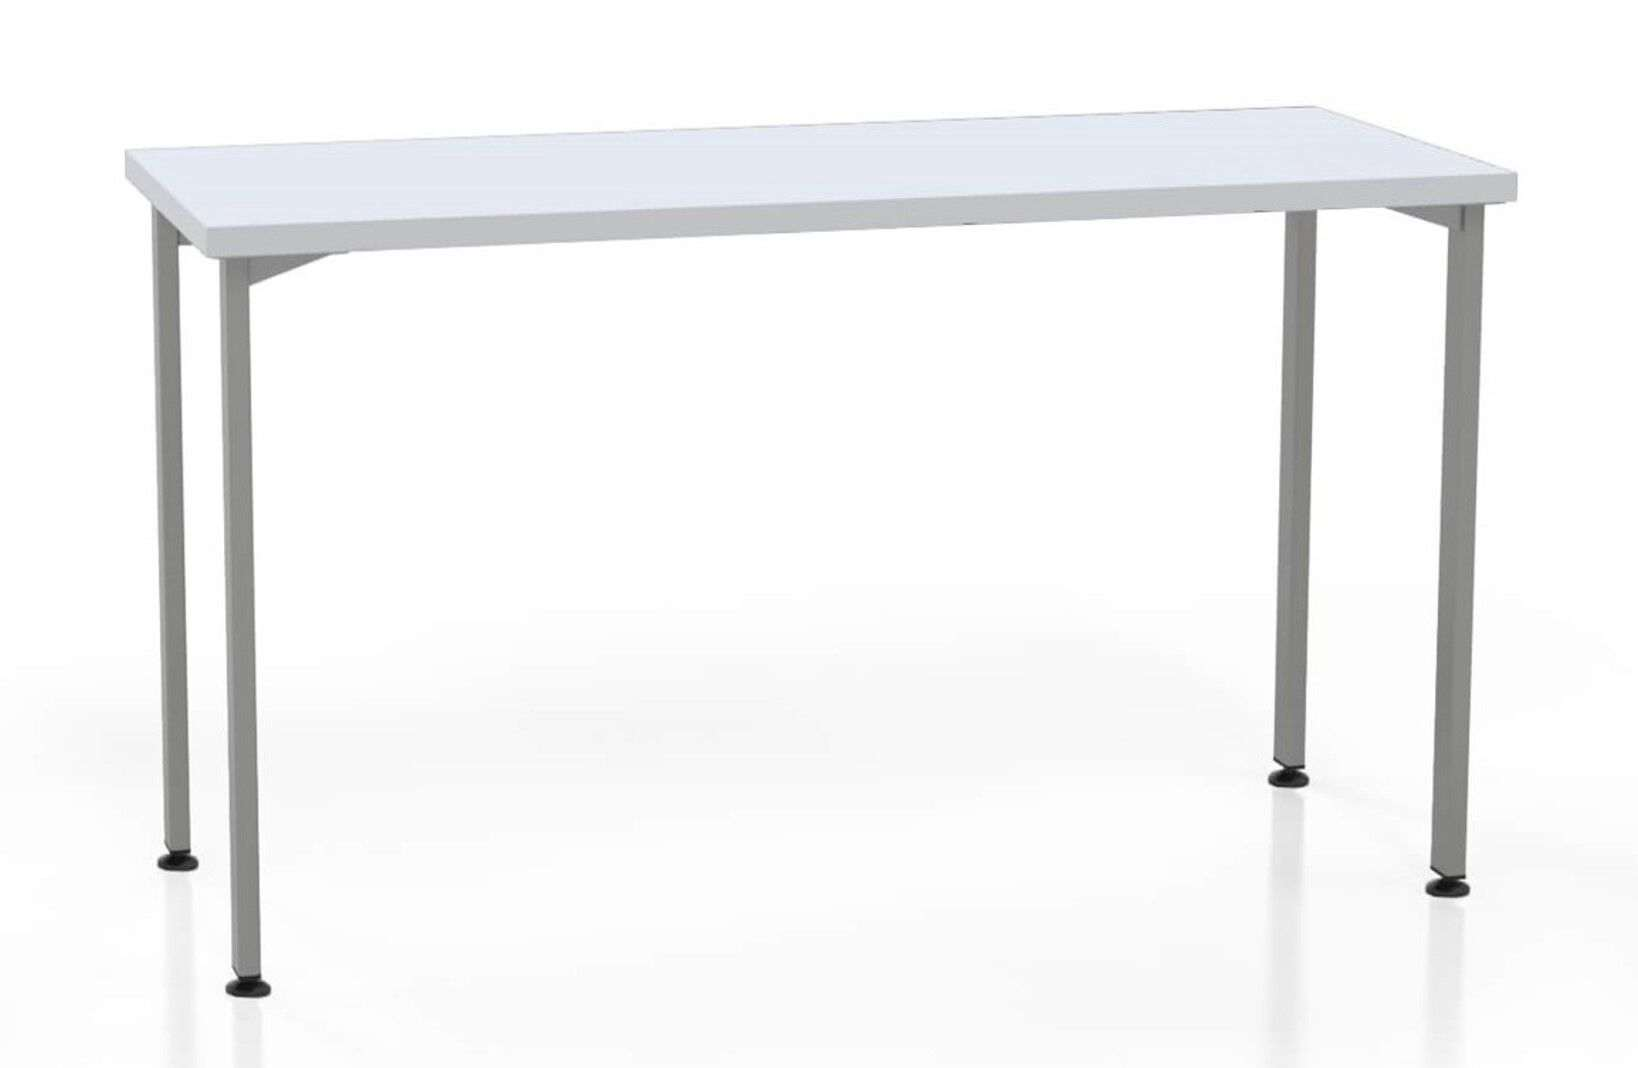 L Shaped Table Desk Desk_preview